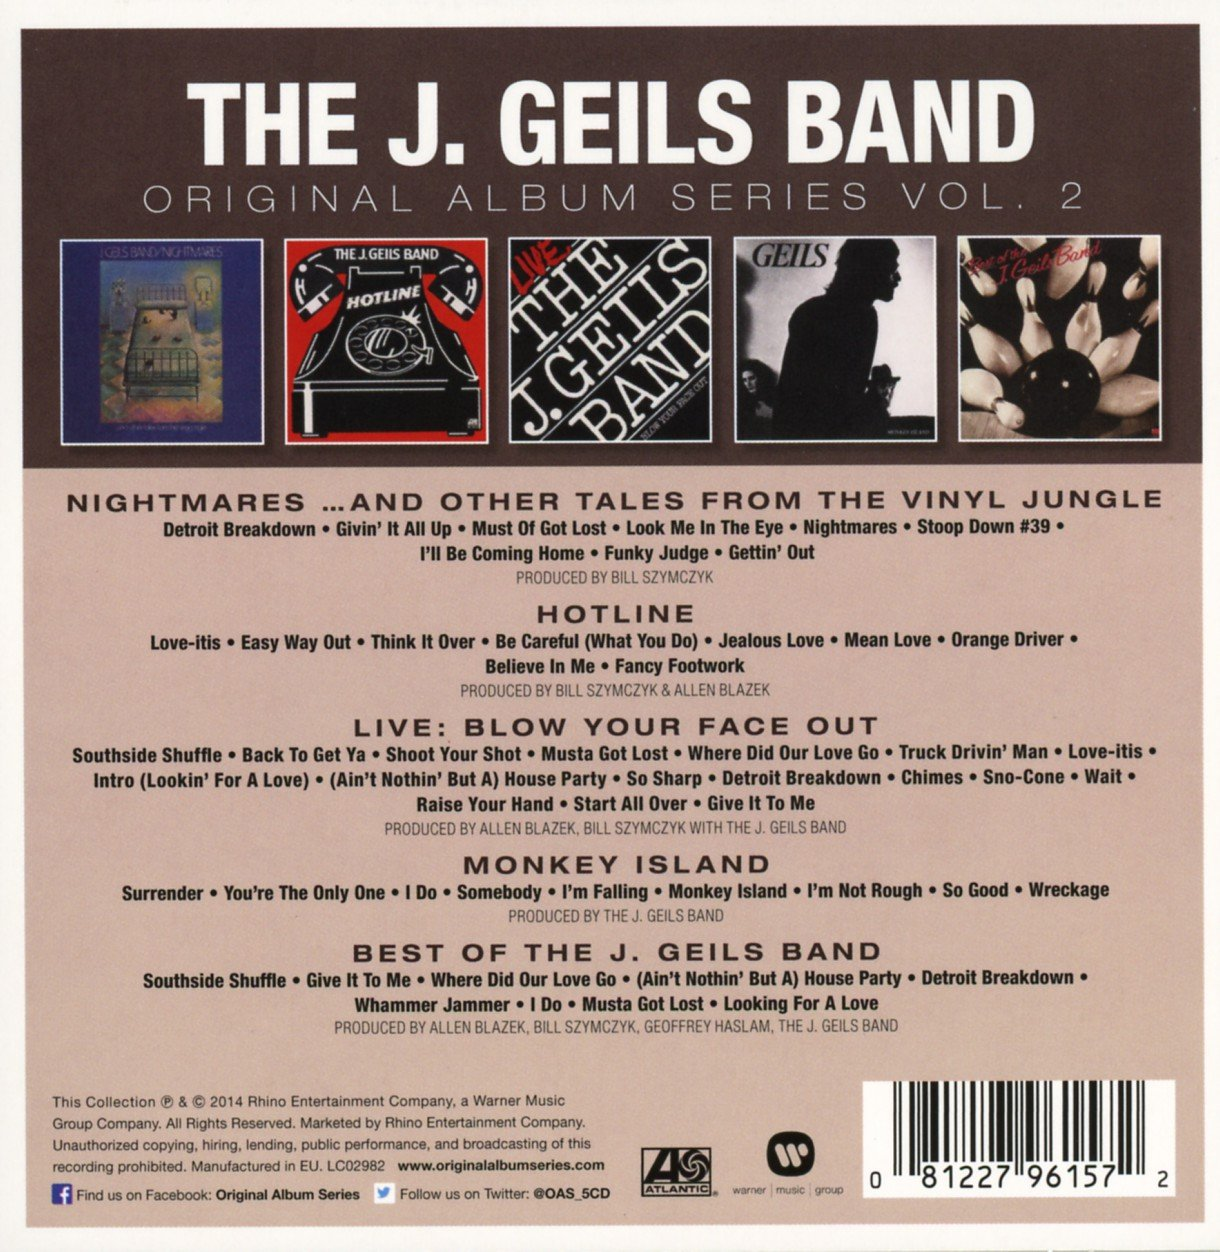 The J. Geils Band - Original Album Series - The J. Geils Band ...